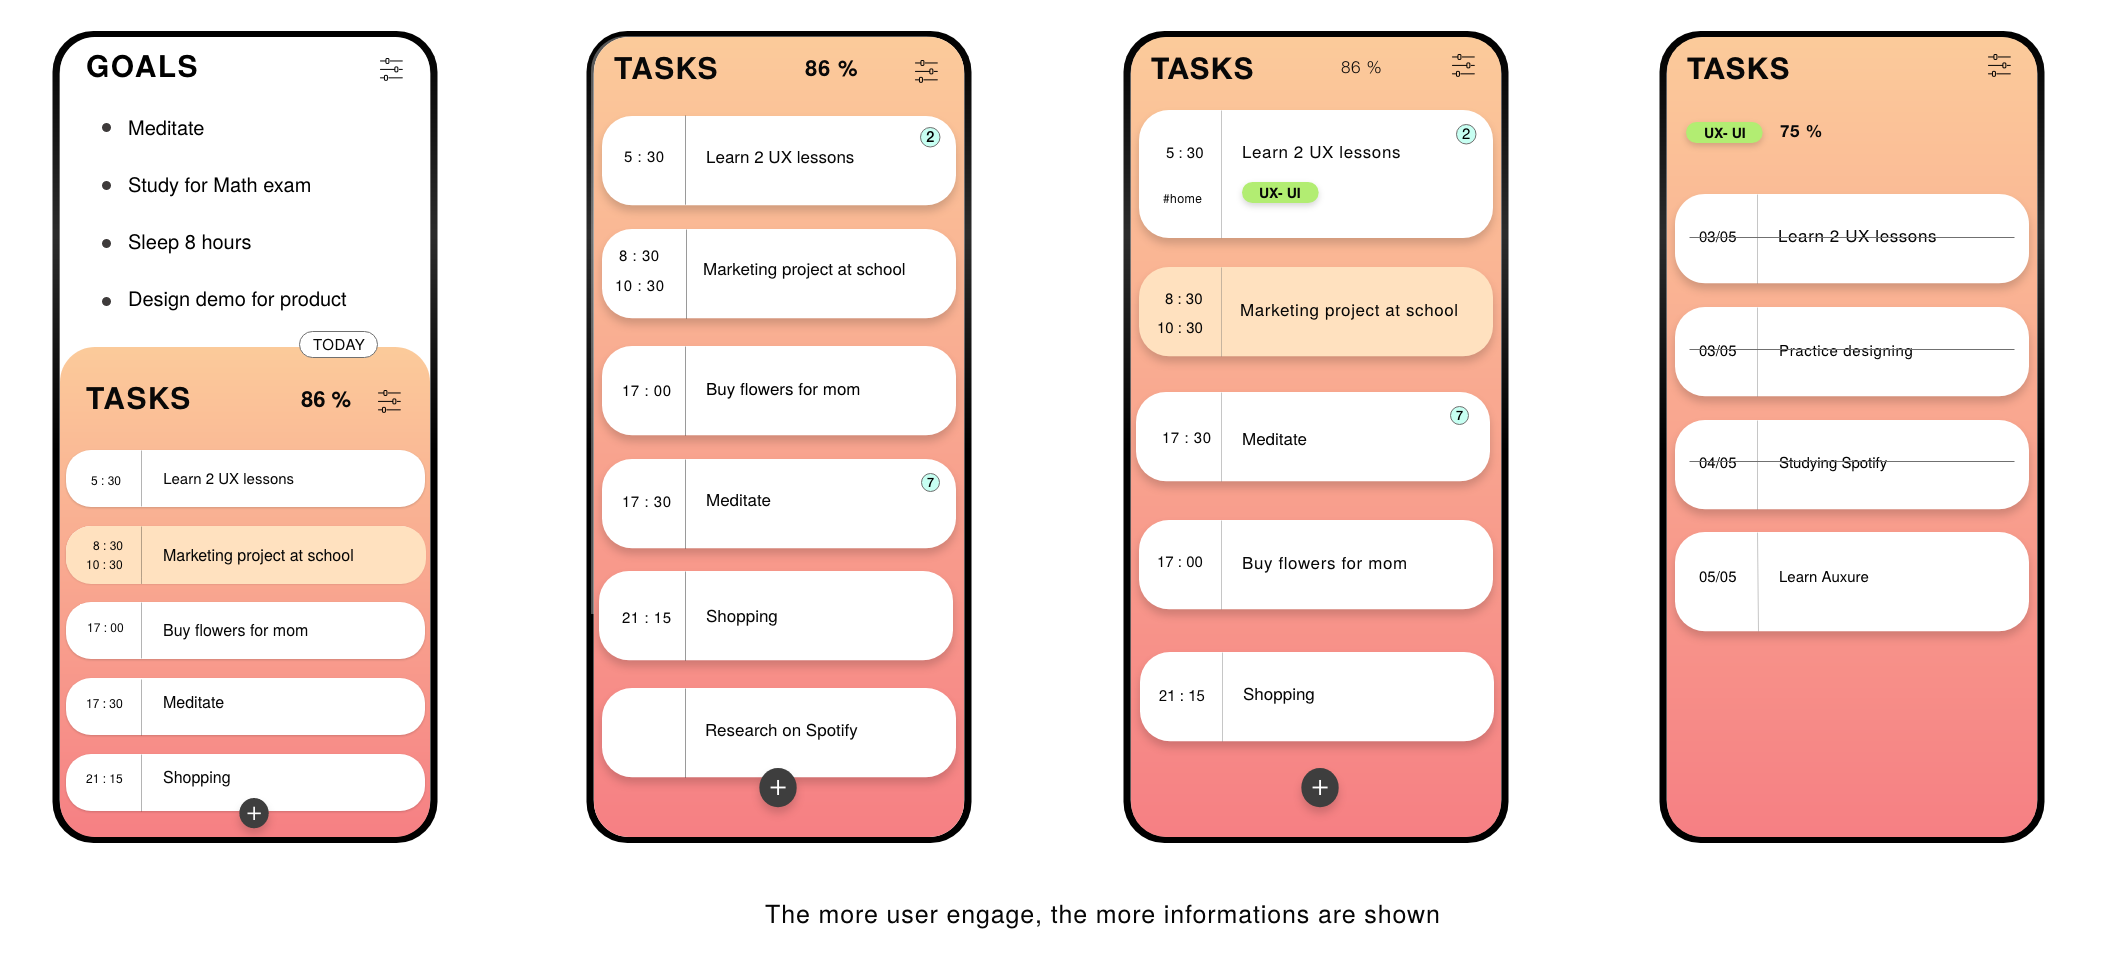 Stuck with to-do list, I created a new app for myself — a UX